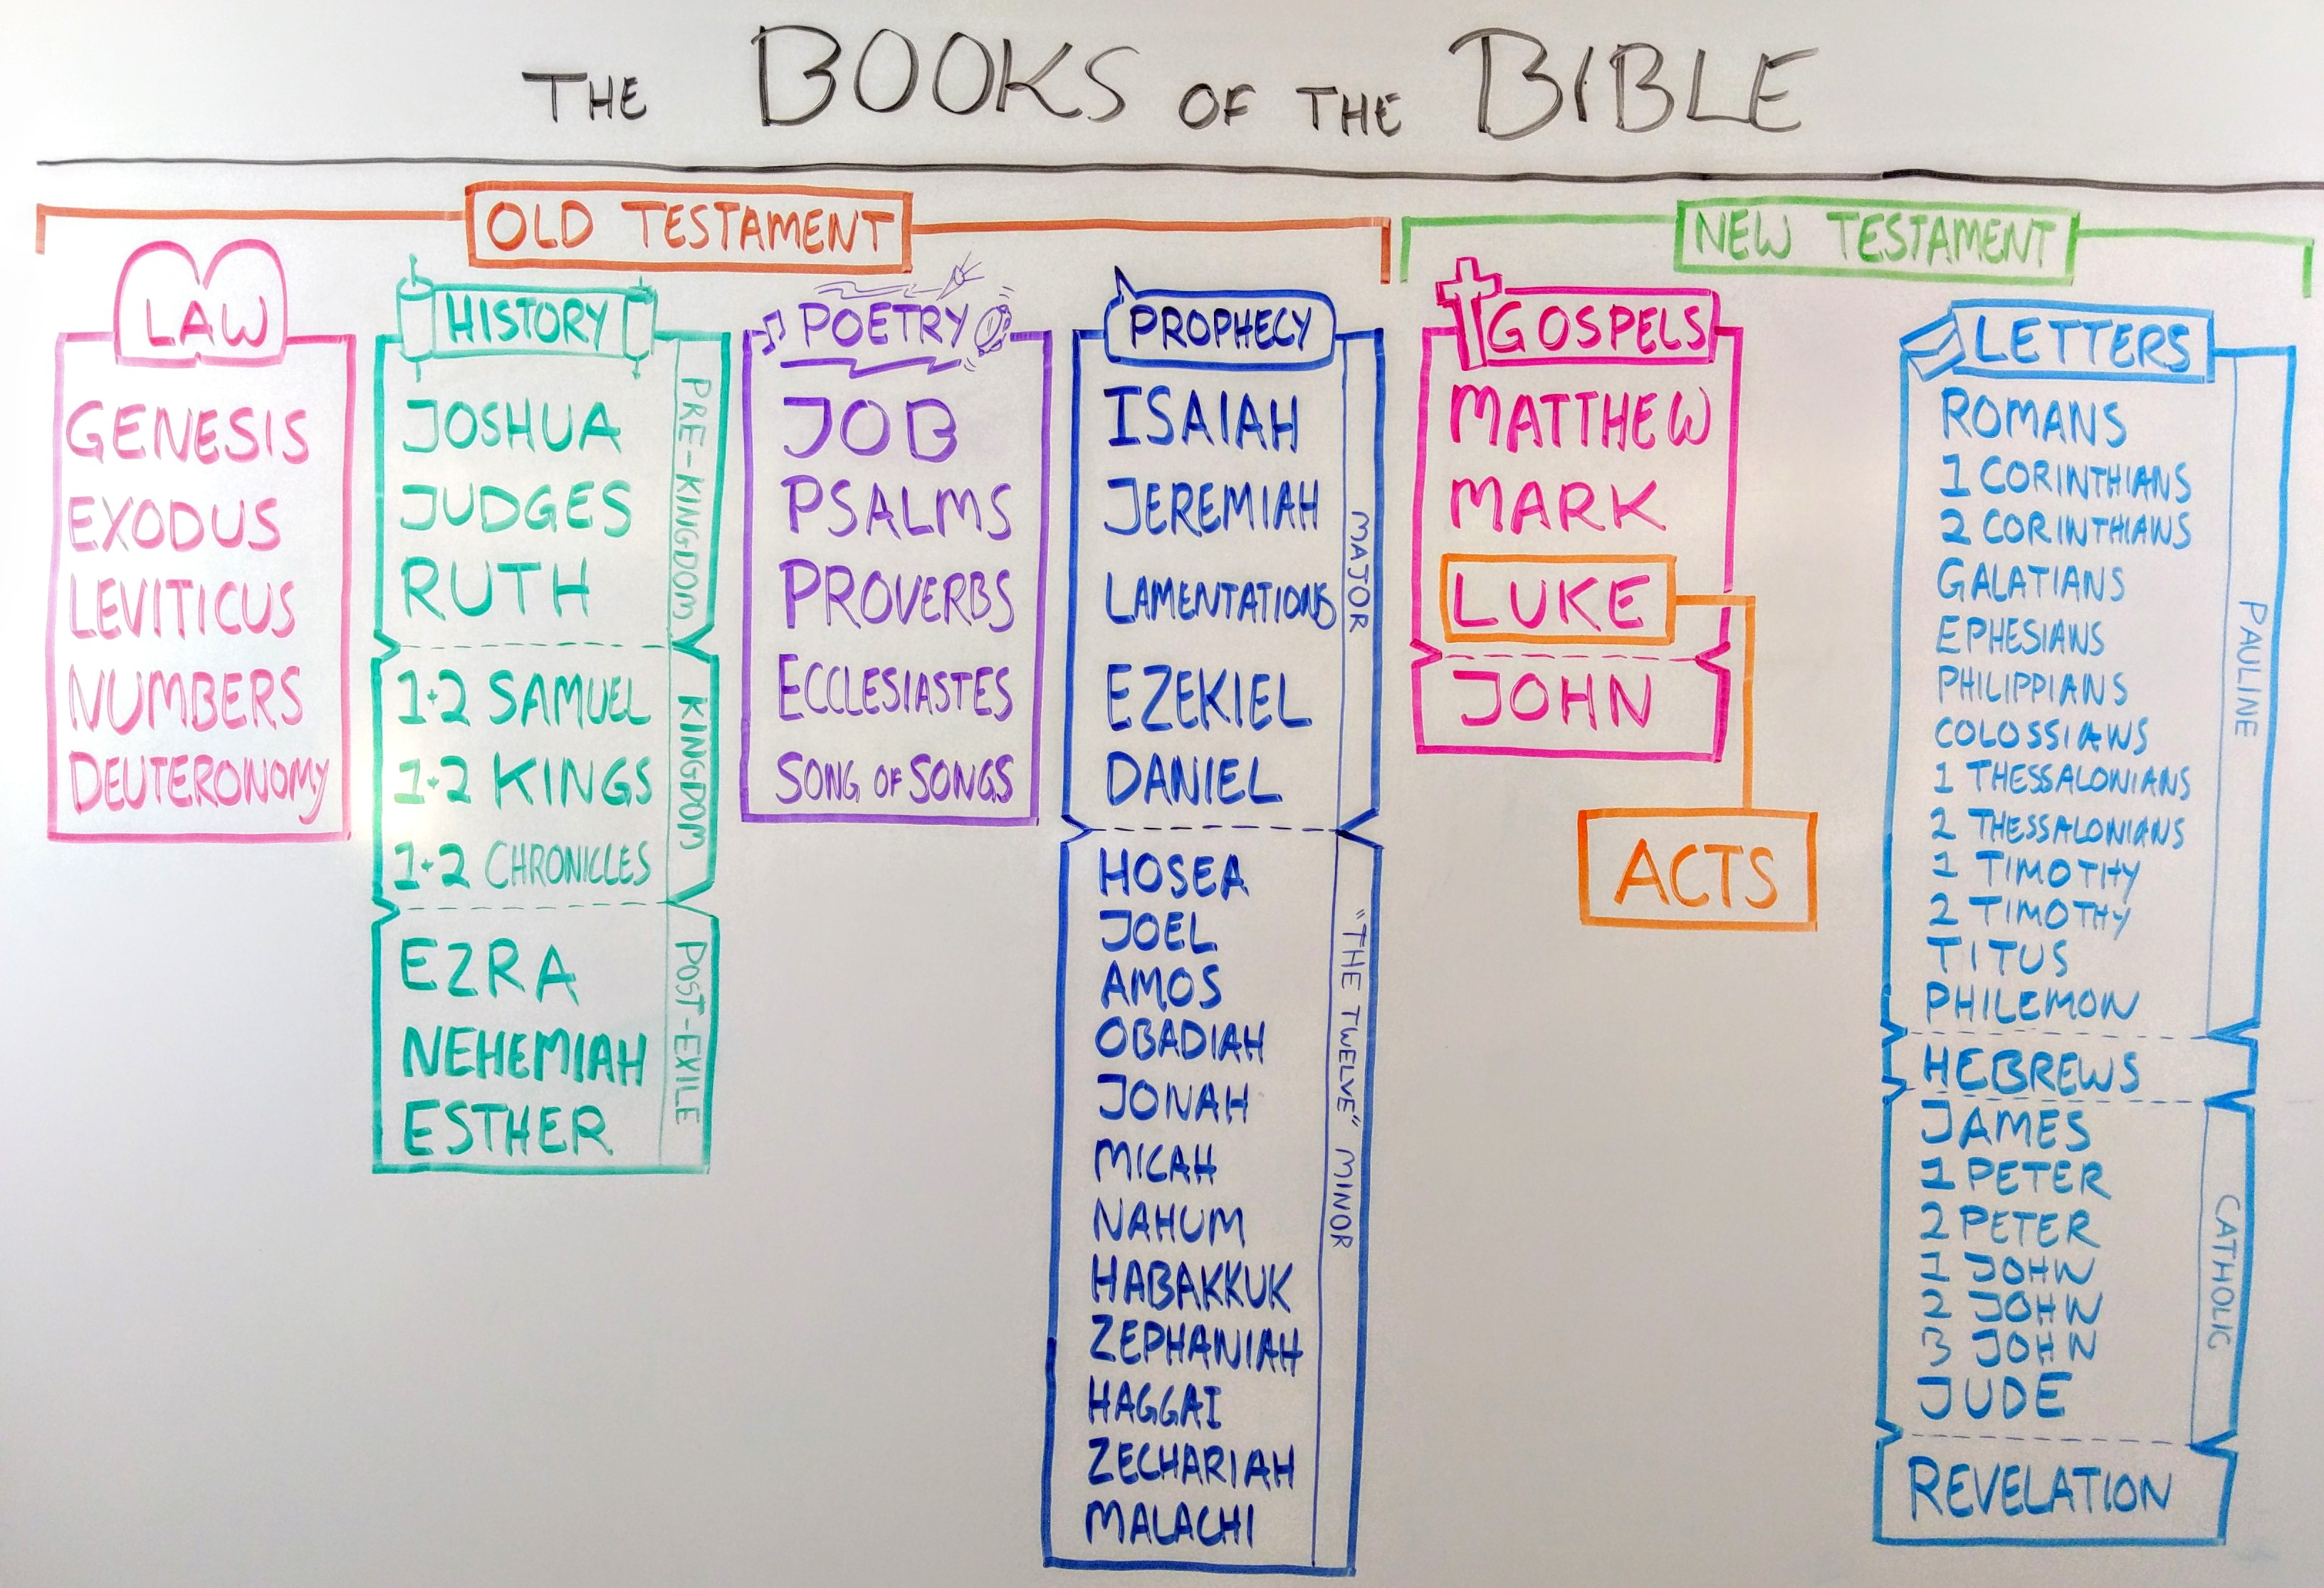 All 66 Books Of The Bible In Easy, One-Sentence Summaries